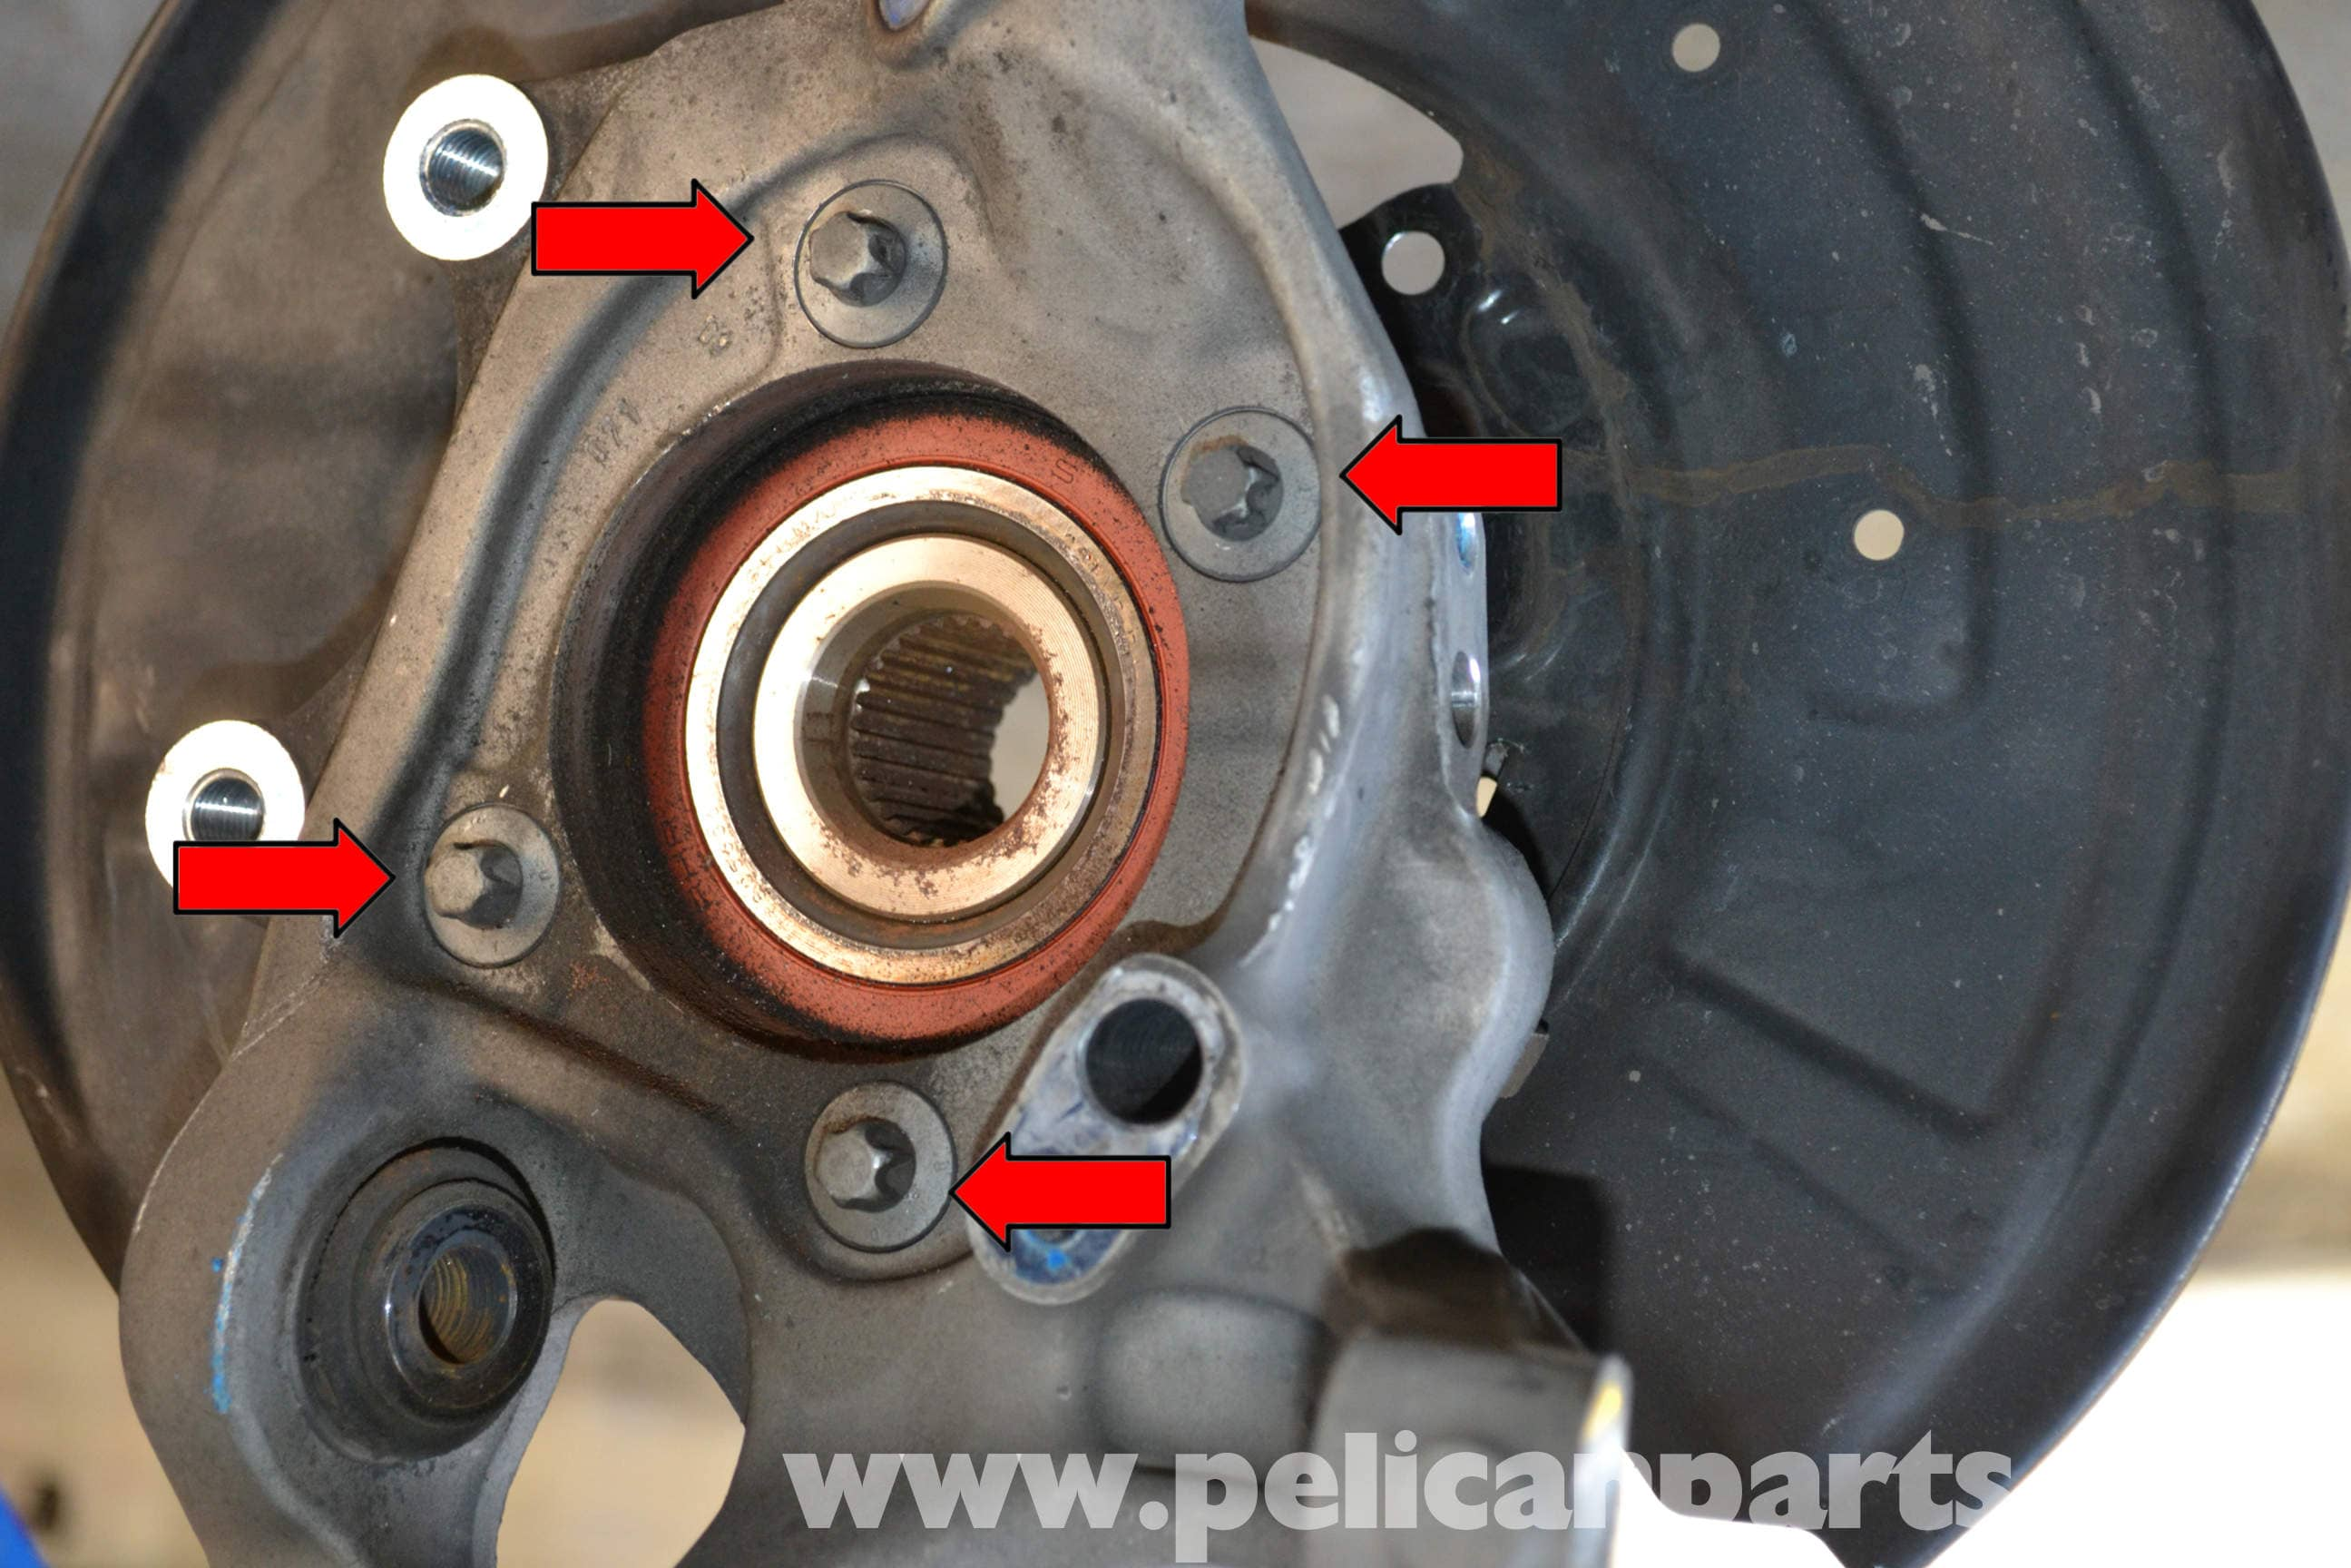 Mercedes-Benz W204 Rear Bearing Replacement - (2008-2014